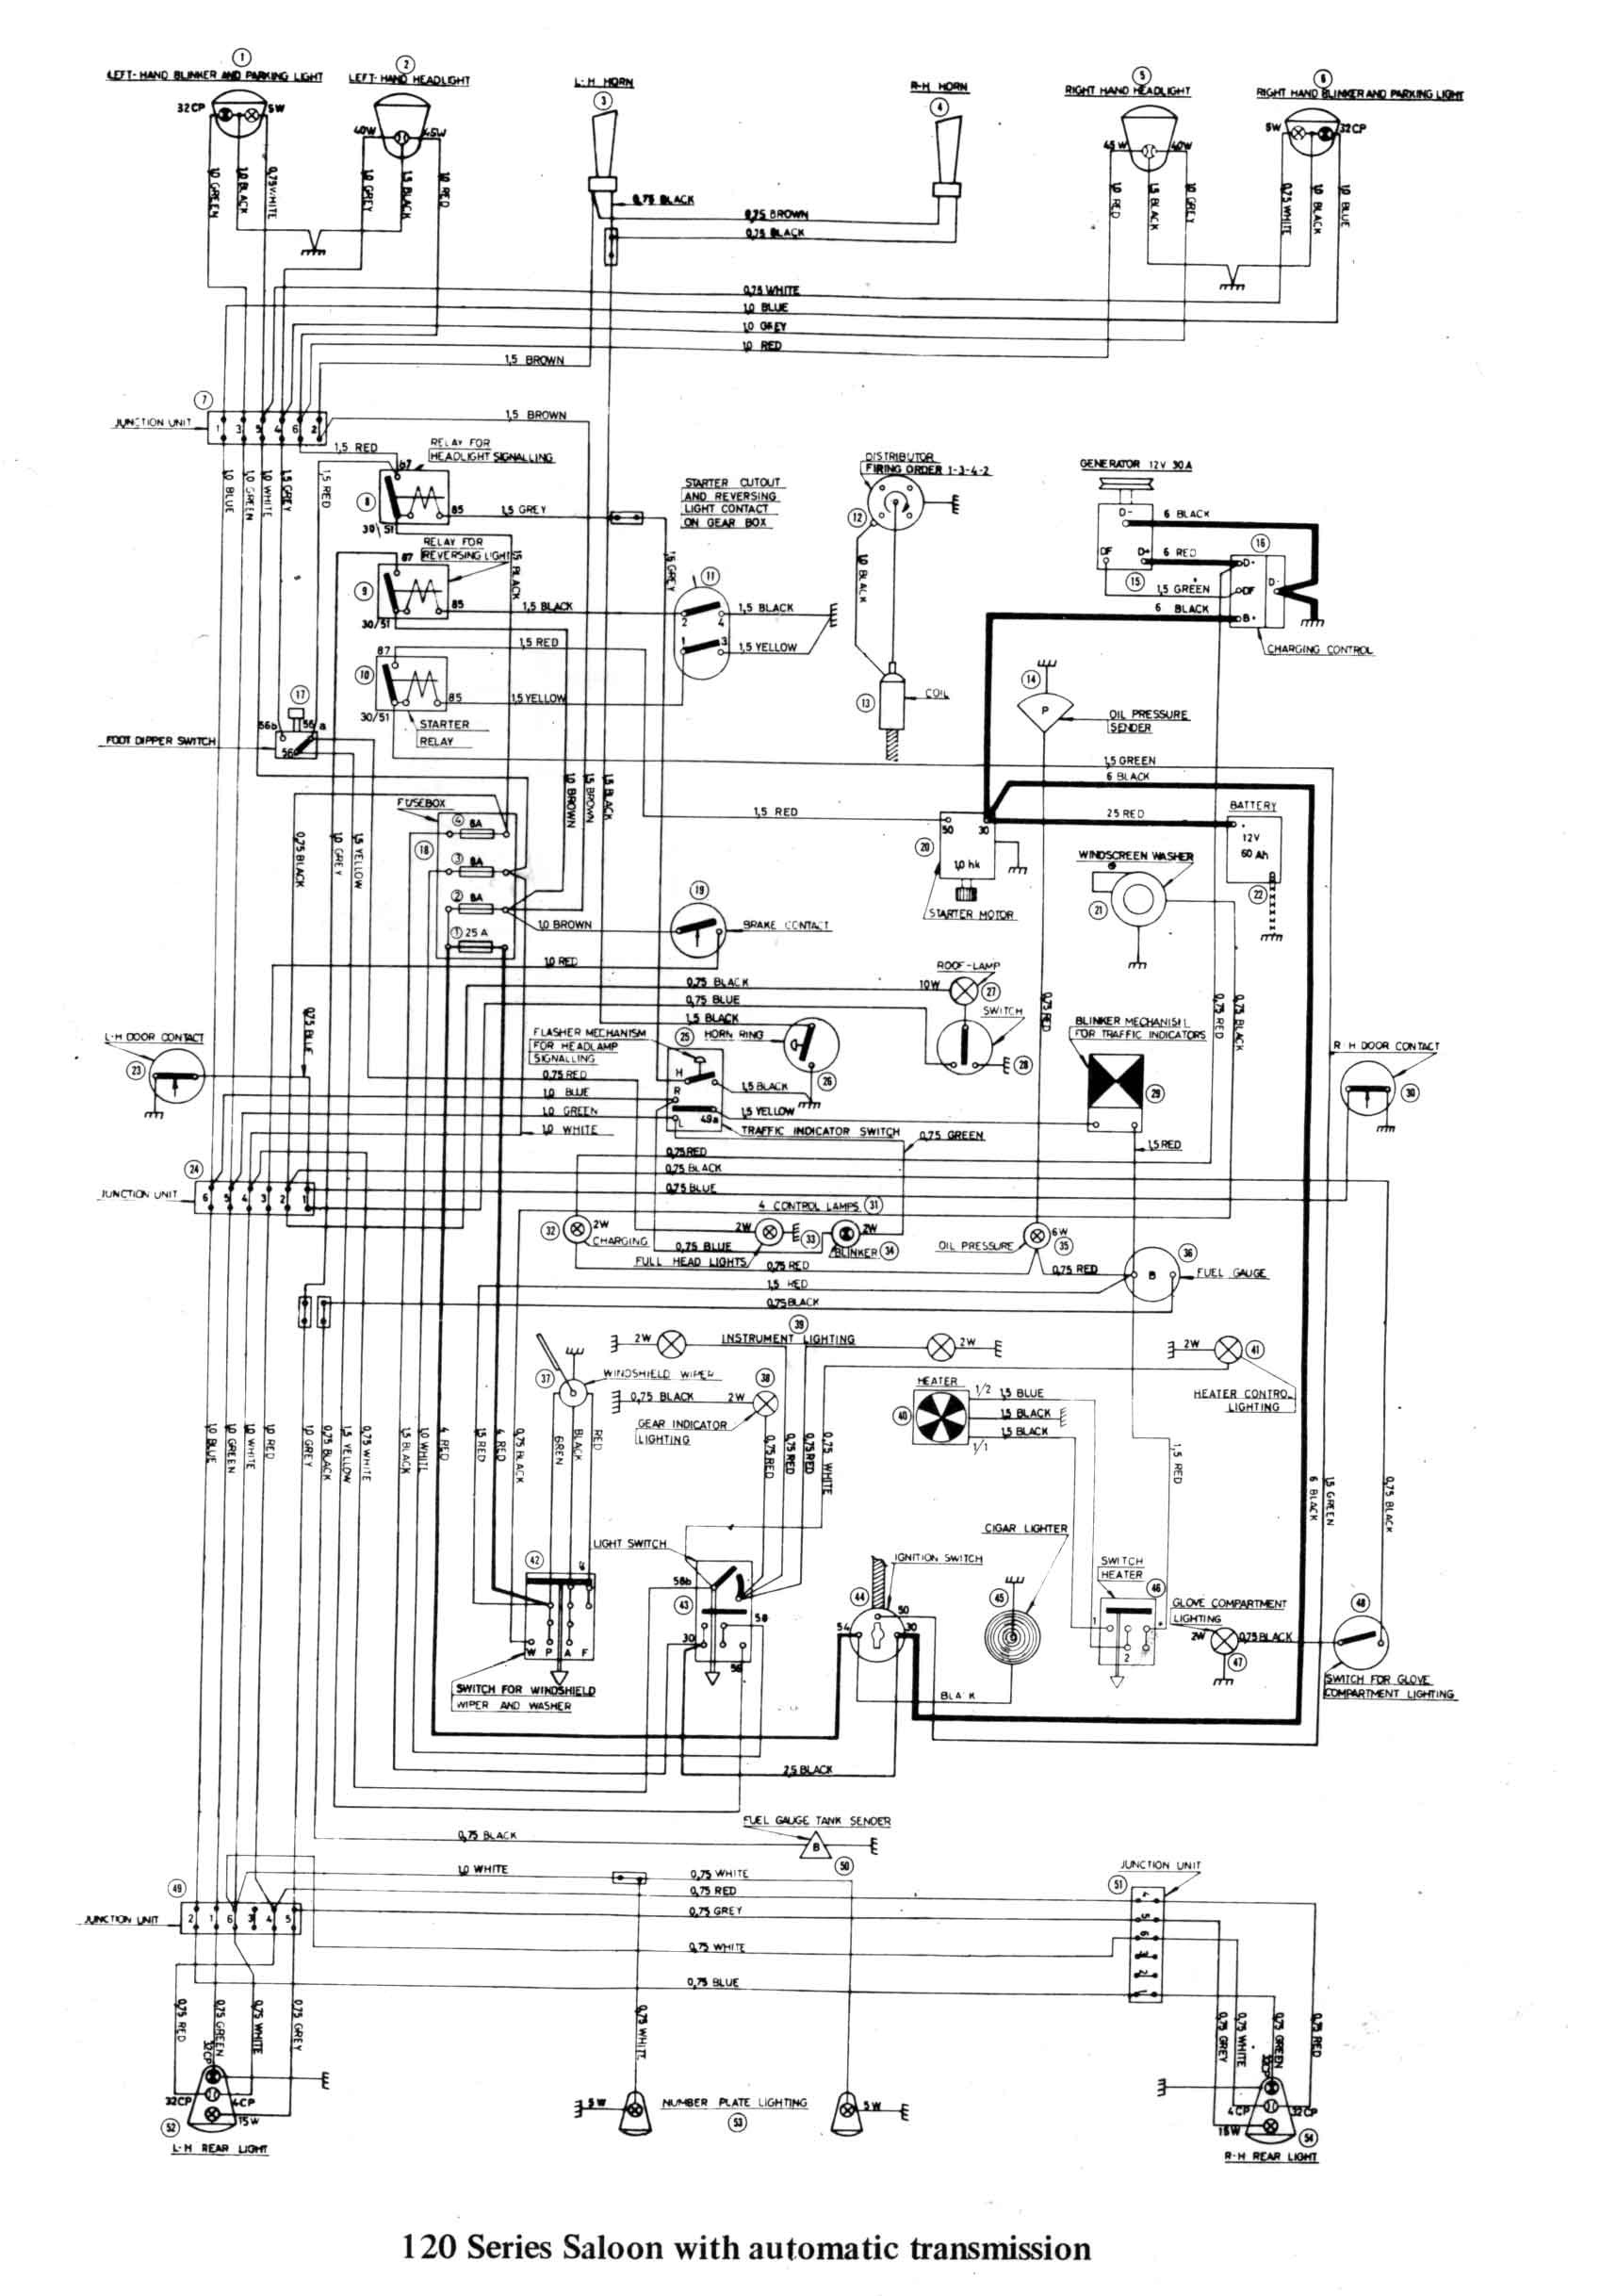 Volvo B230f Engine Diagram Sw Em Od Retrofitting On A Vintage Volvo Of Volvo B230f Engine Diagram